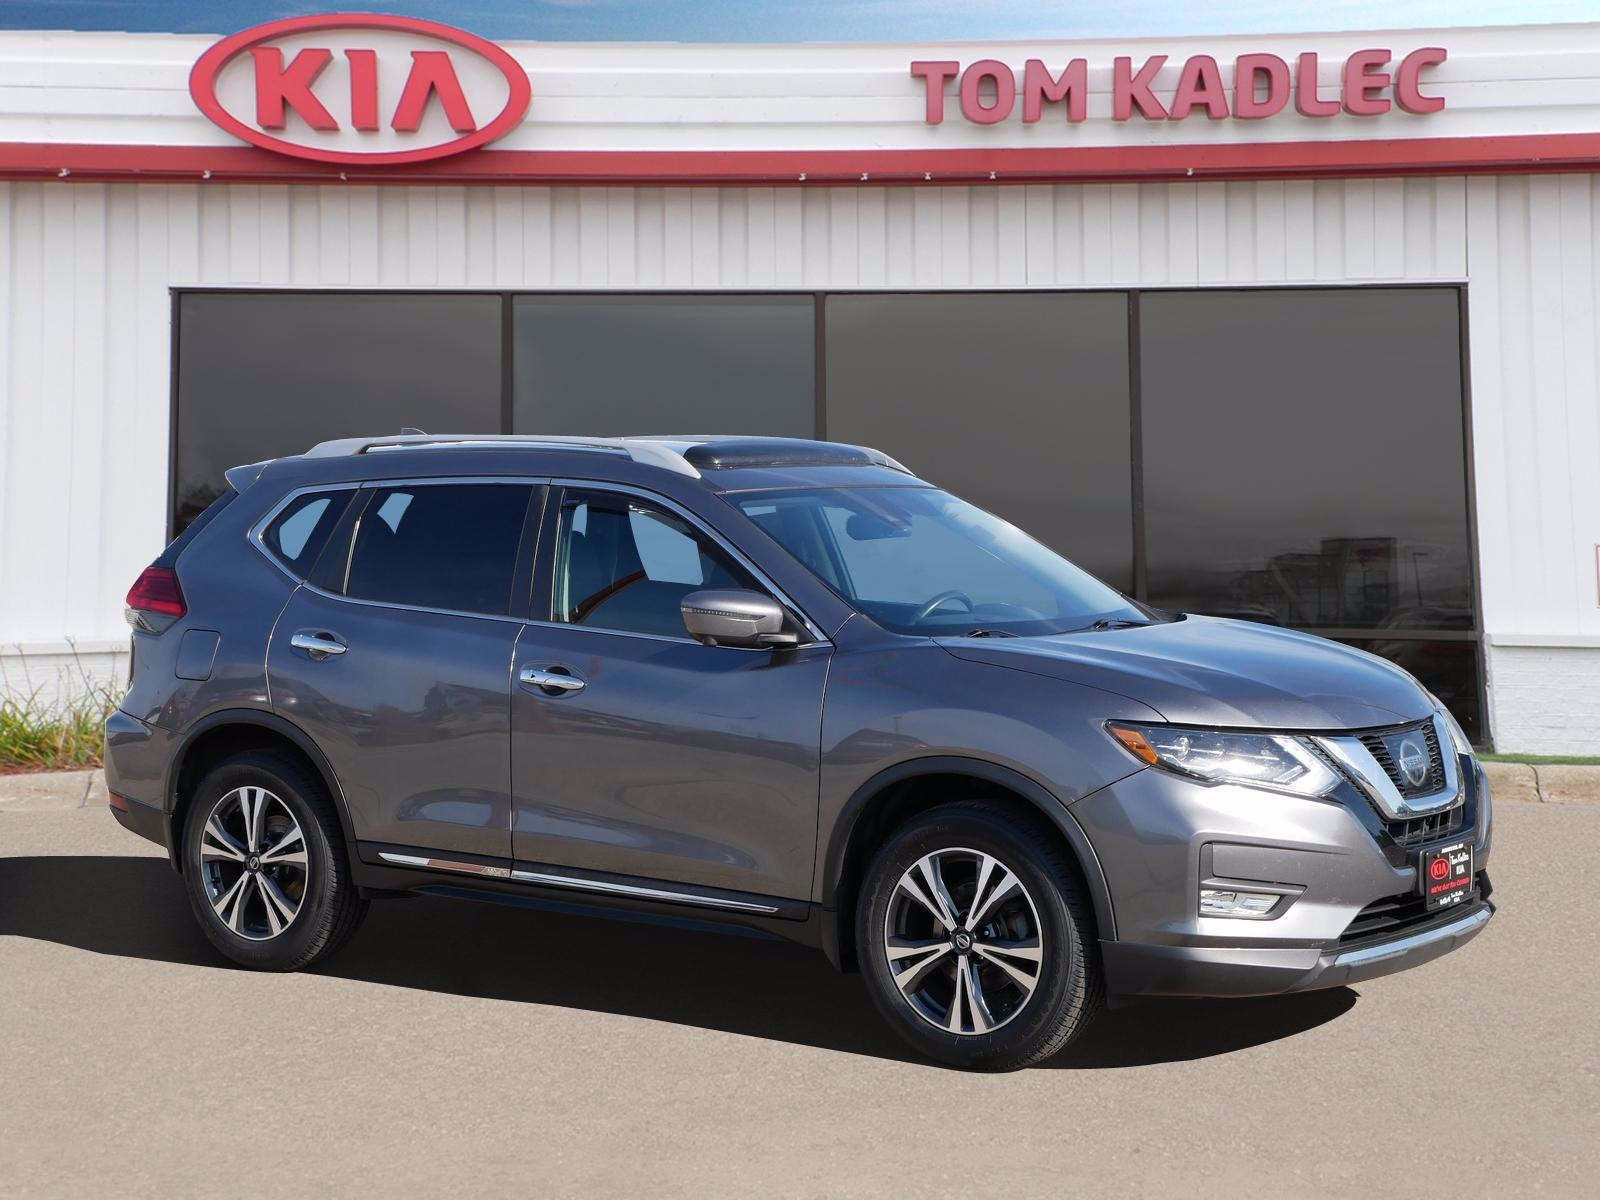 Used 2017 Nissan Rogue SL with VIN 5N1AT2MV6HC799205 for sale in Rochester, Minnesota